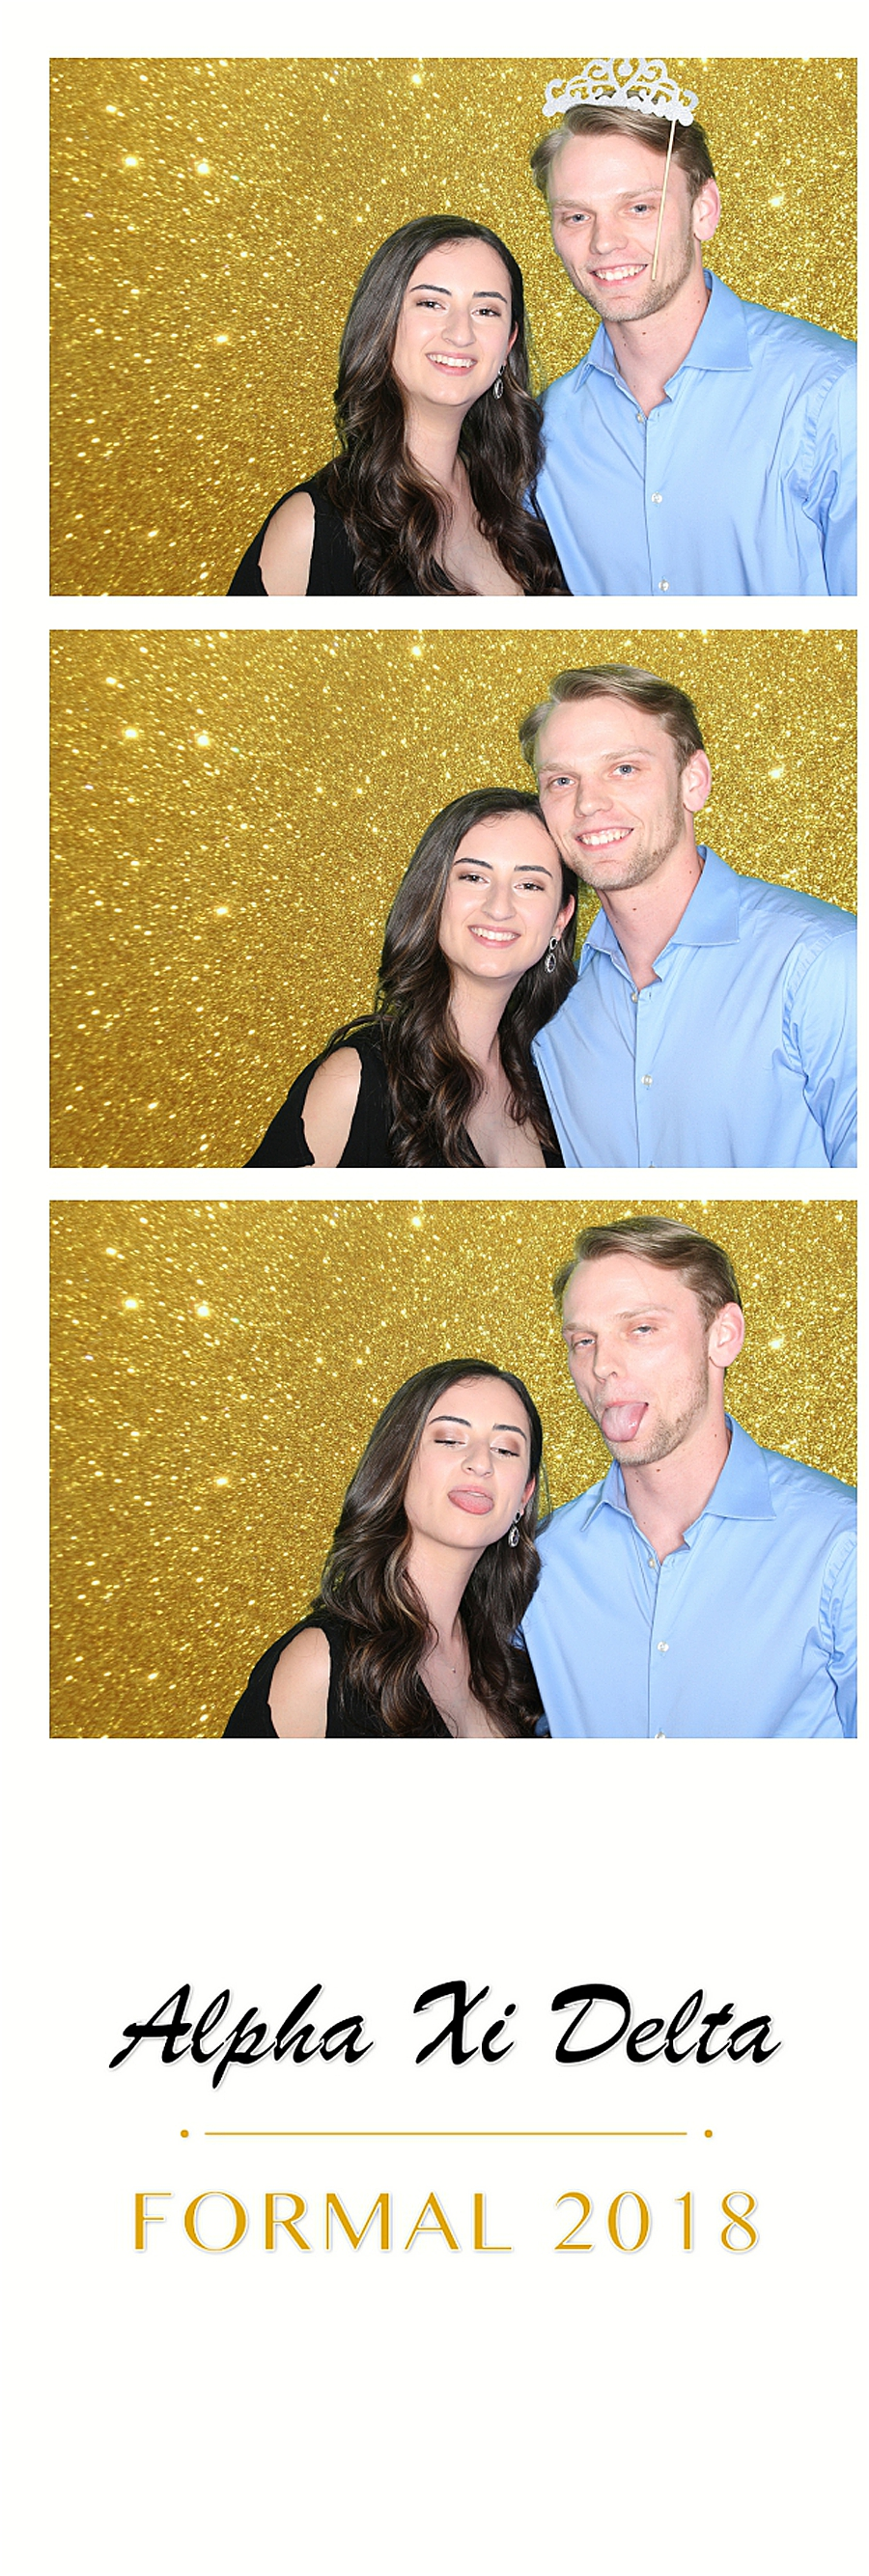 Knoxville Photo Booth_1601.jpg